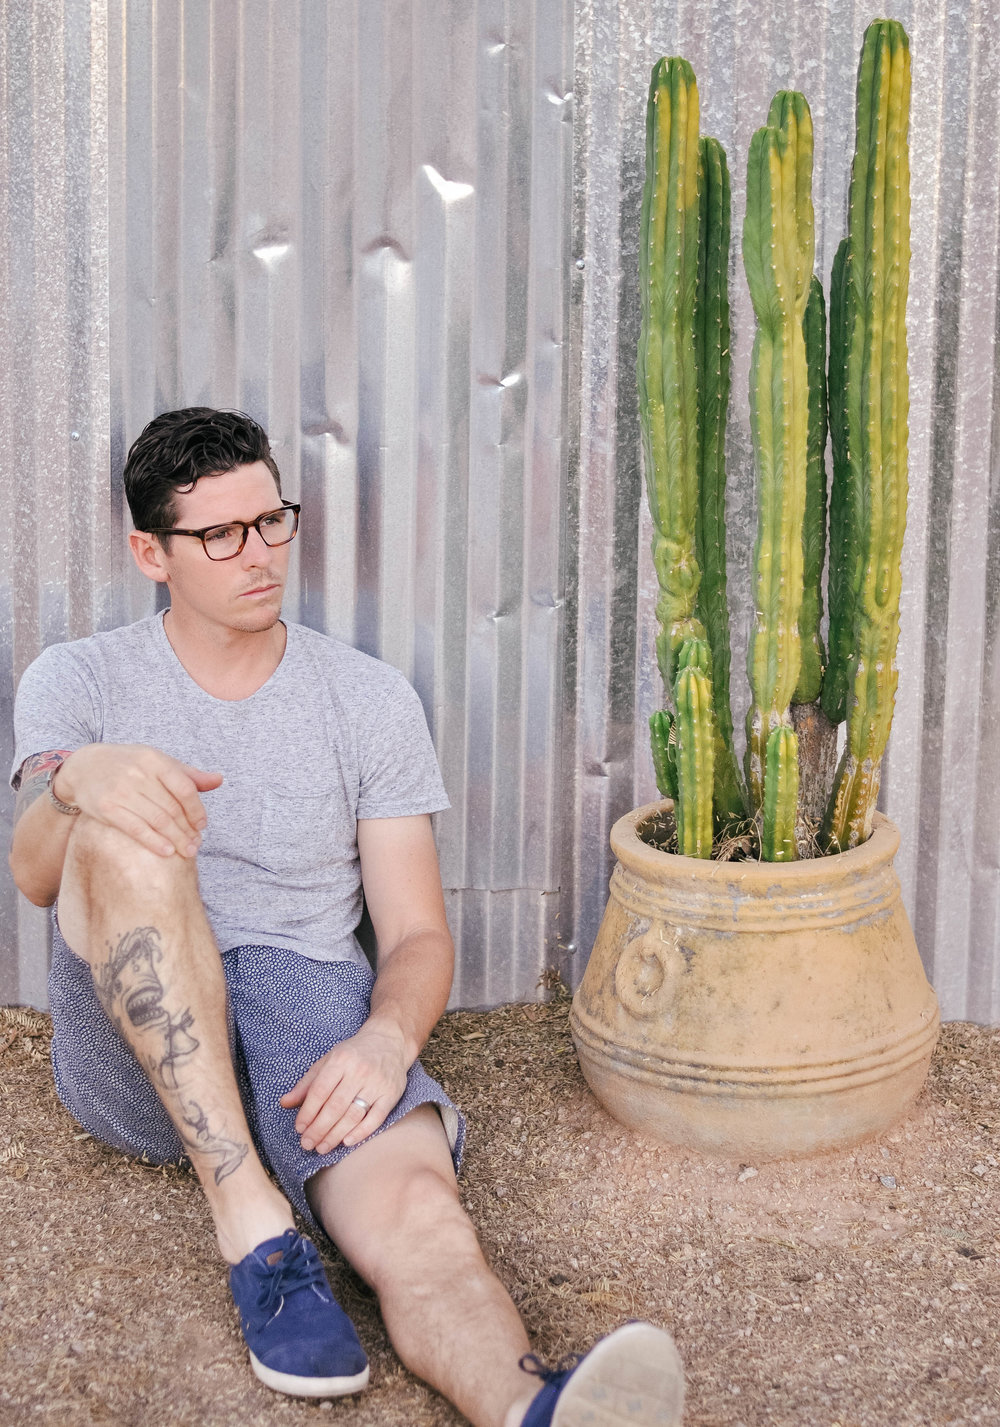 man in glasses sitting on ground next to cactus